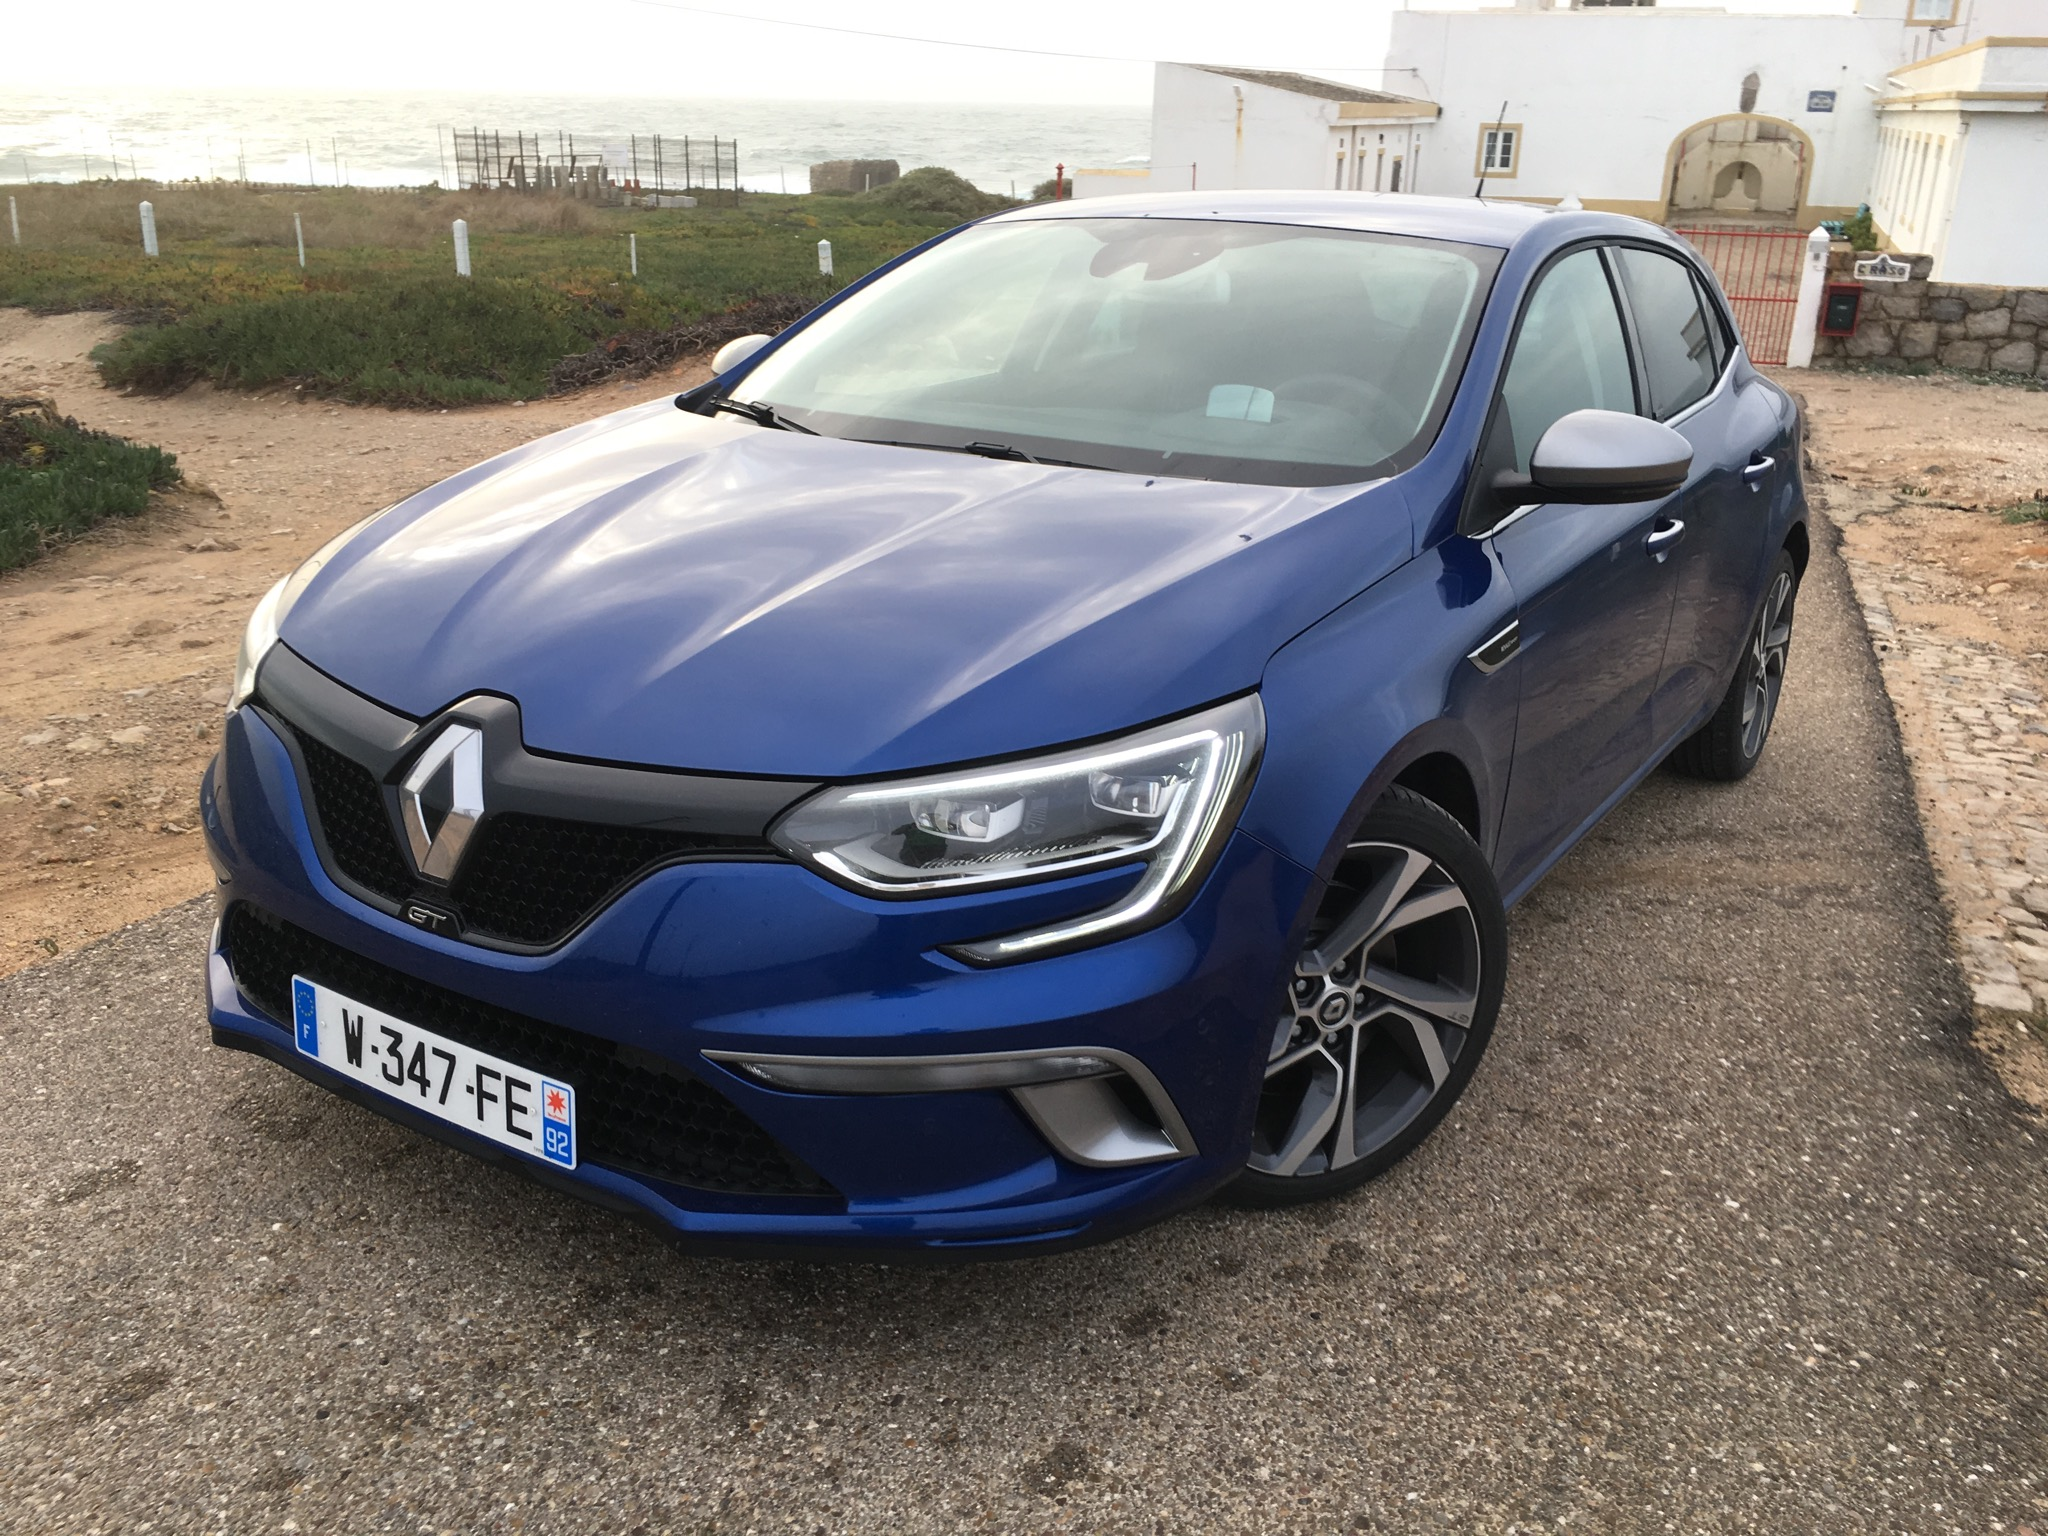 2016 Renault Megane Gt Hatchback (Photo 8 of 27)